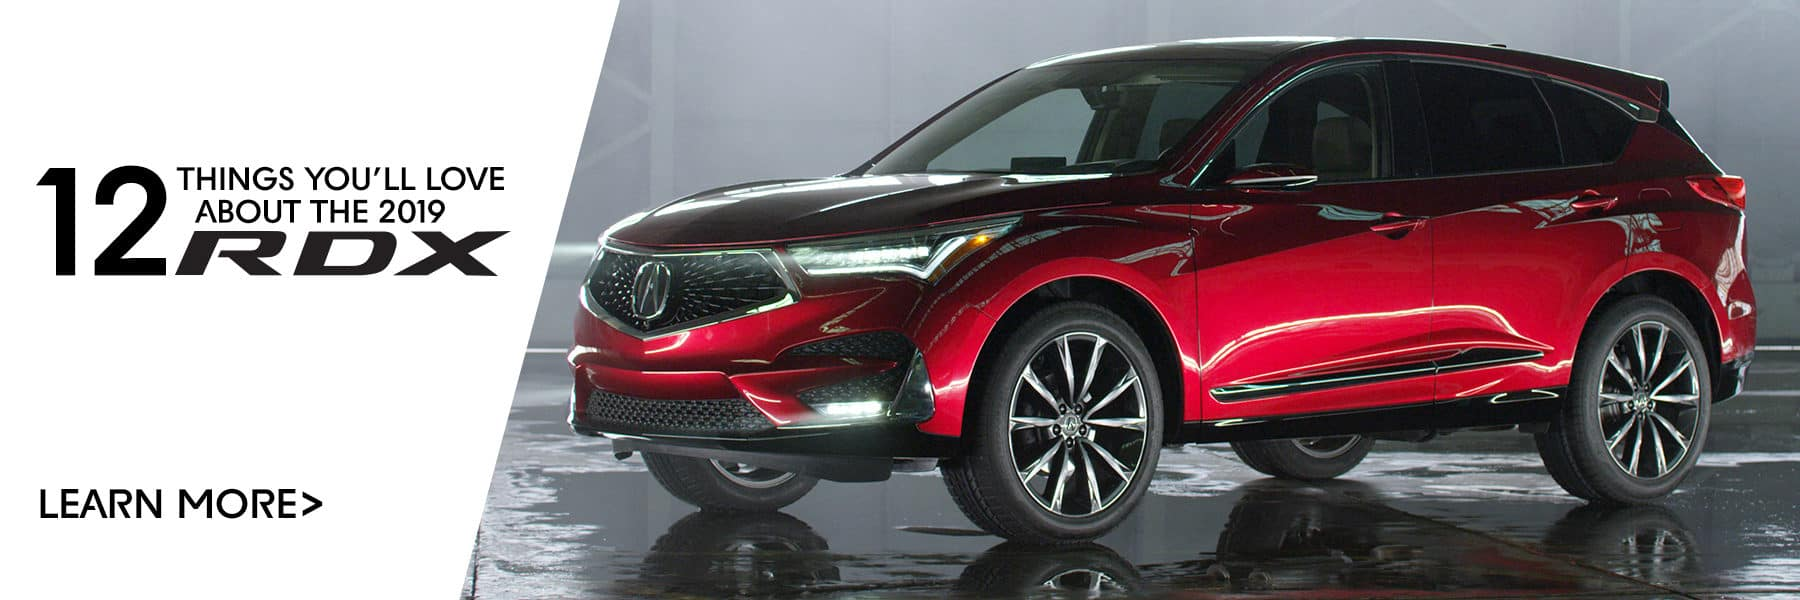 houston acura luxury of mccall dealers sterling mdx